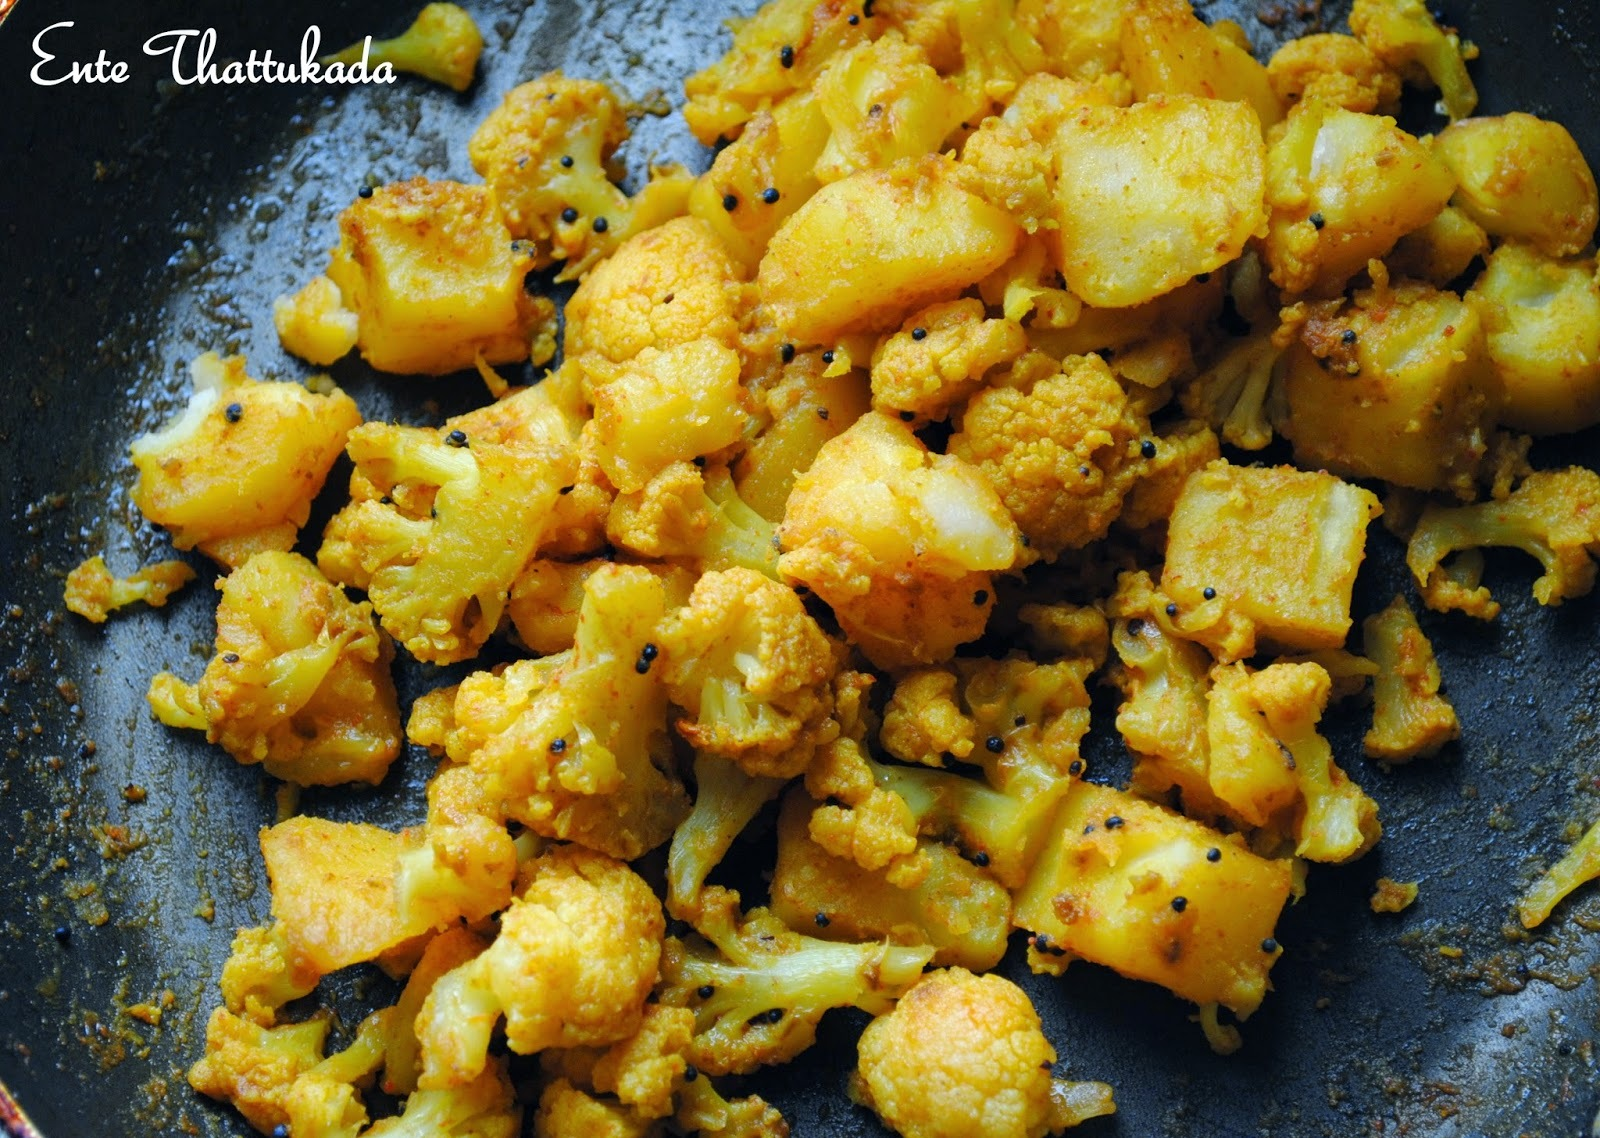 Potato Cauliflower Stir Fry